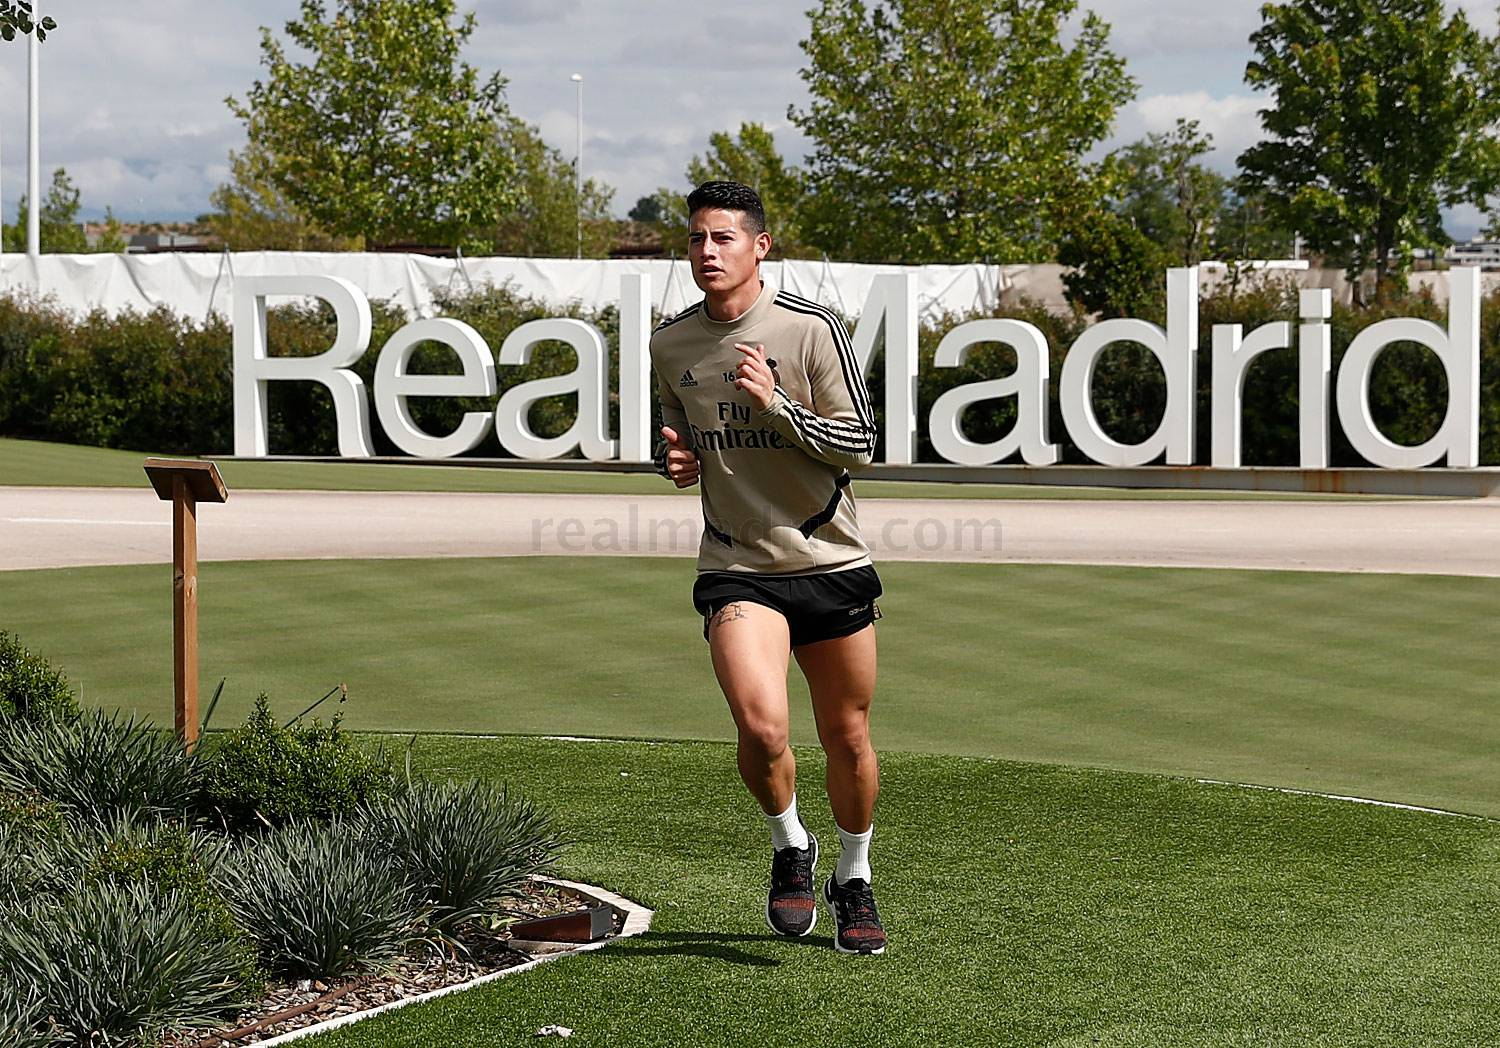 Real Madrid - Entrenamiento del Real Madrid  - 16-05-2020